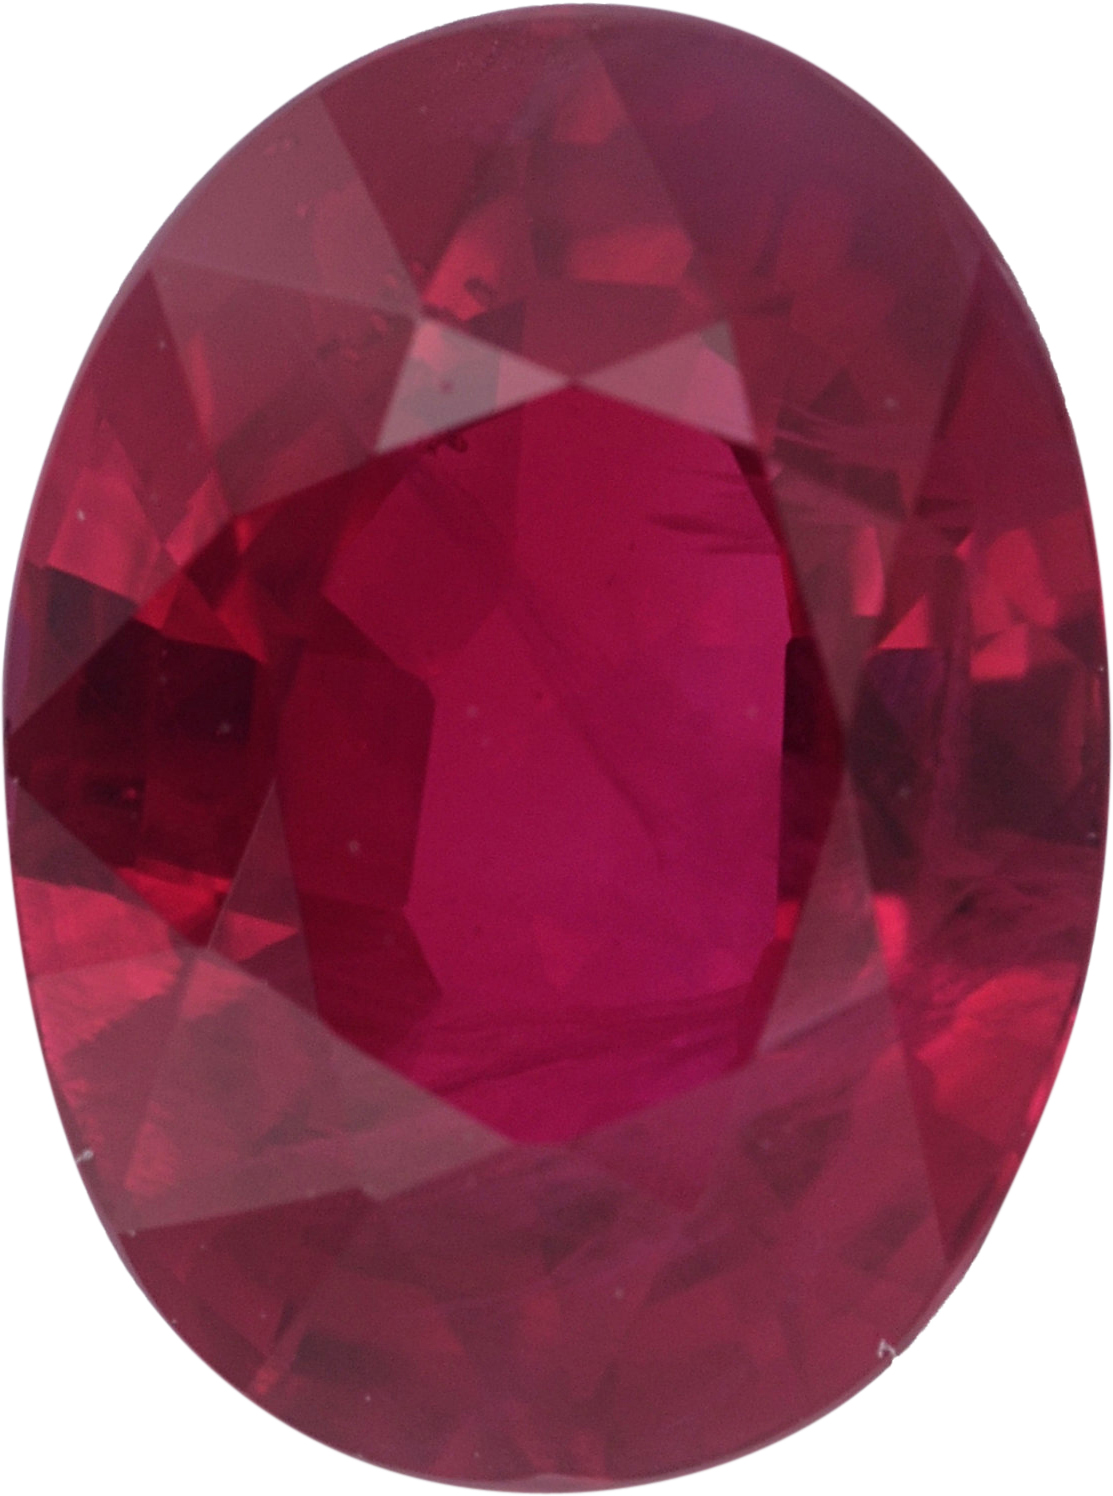 Low Price on Oval Cut Loose Ruby Gem,  Red Color, 7.50 x 5.61 mm, 1.59 carats